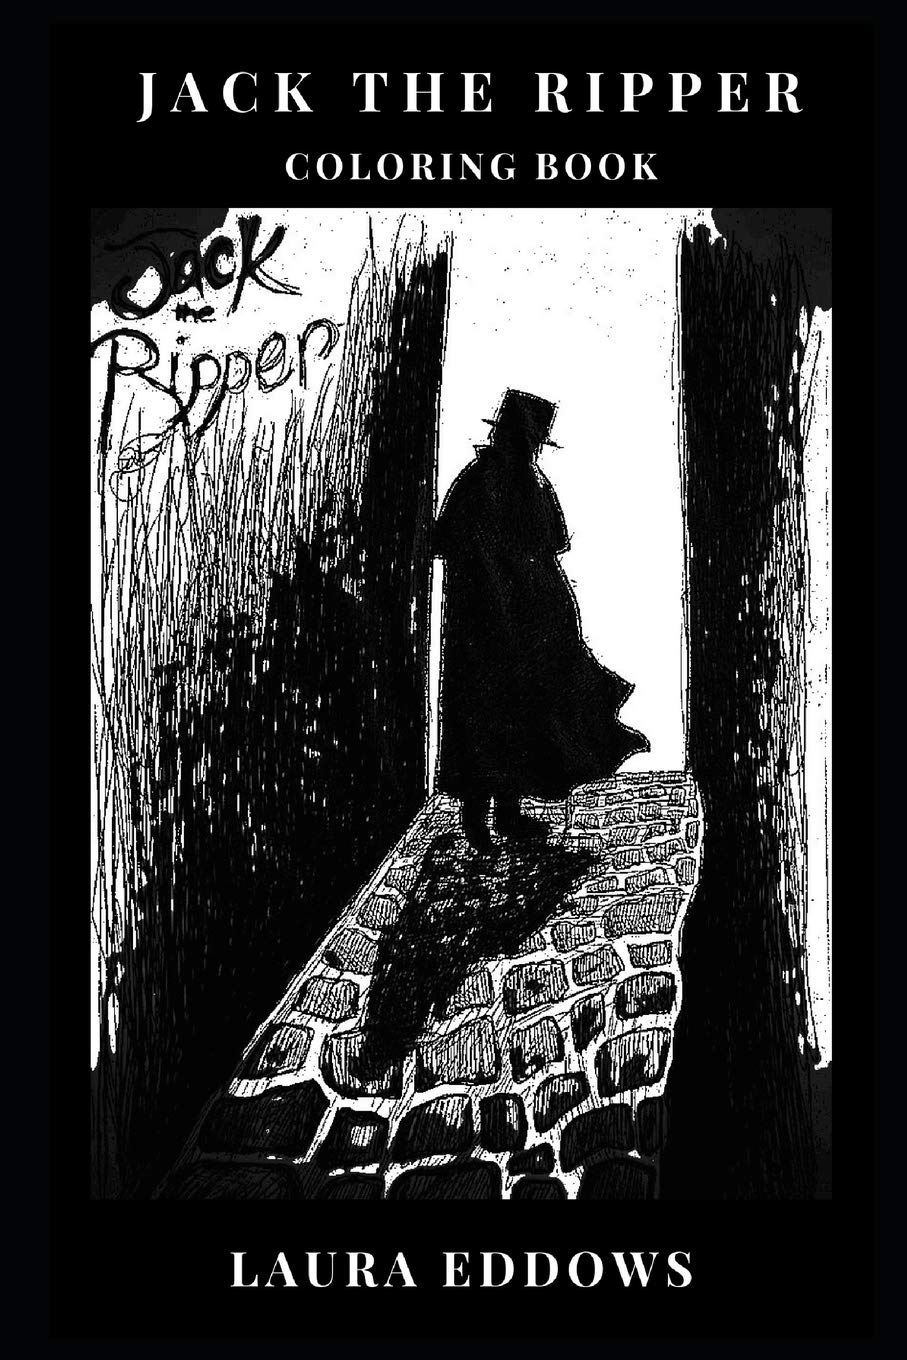 Jack the Ripper Coloring Book: Legendary Serial Killer and